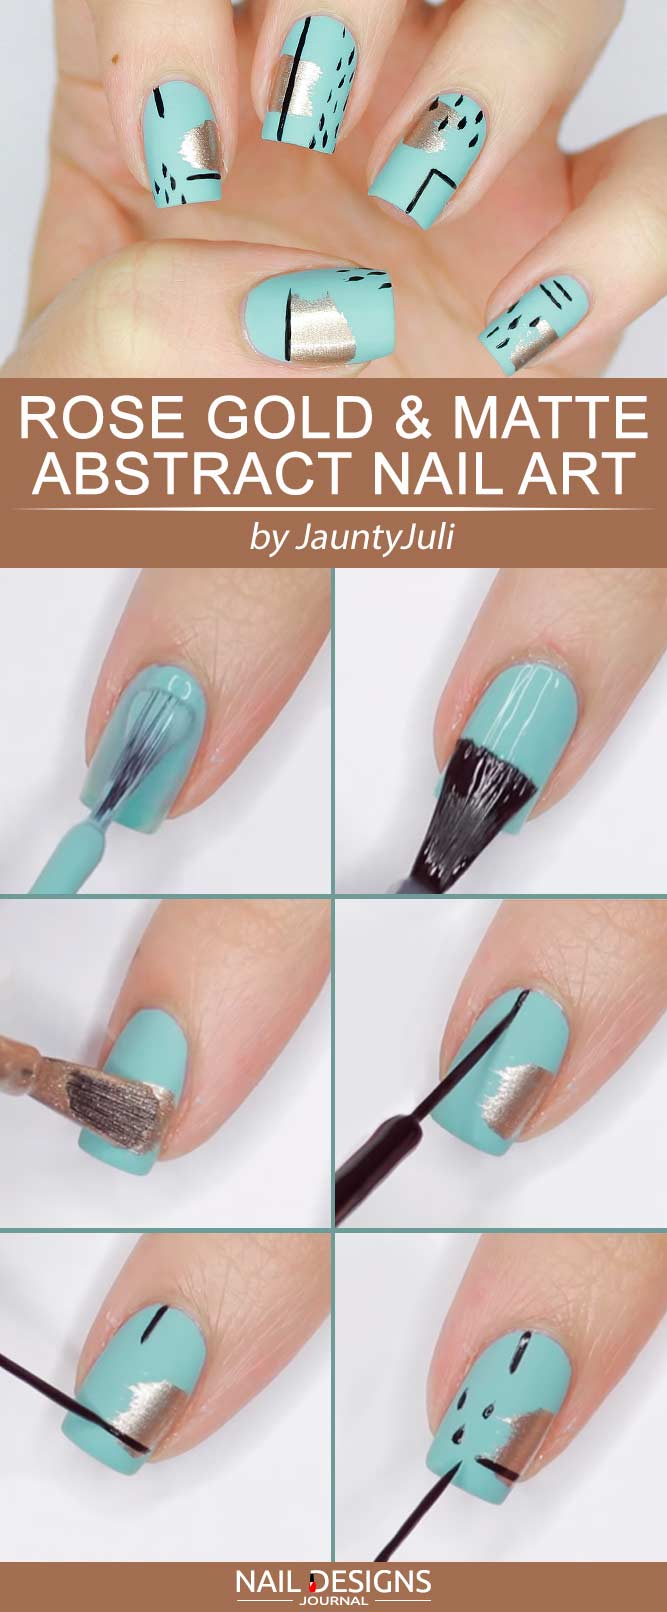 Cute Nails Designs Matte Blue Abstract Art #abstractnails #mattenails #bluenails